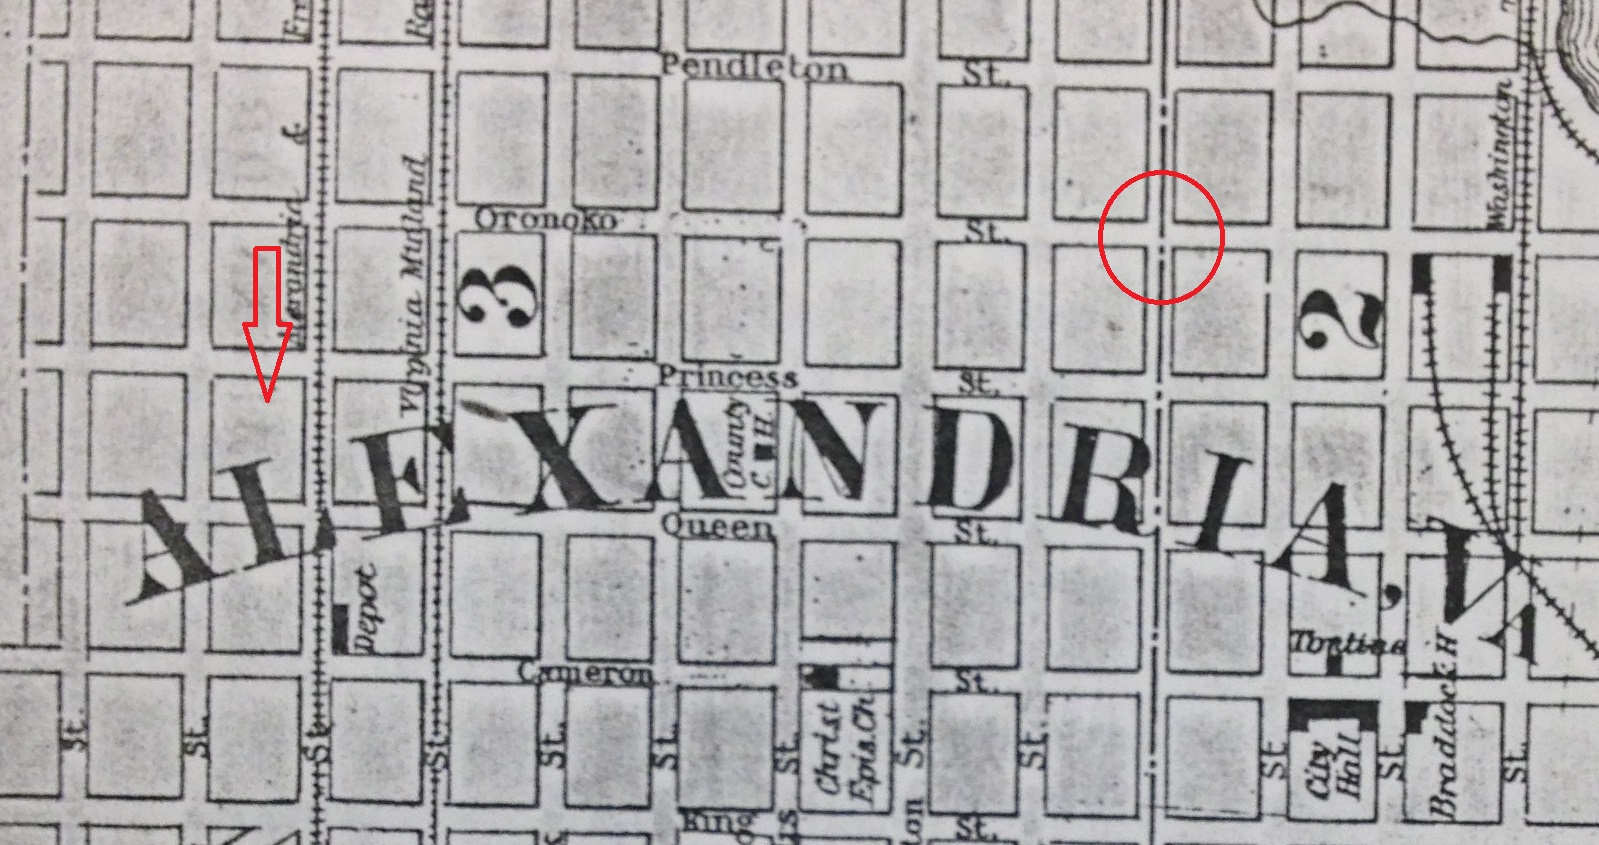 Map showing the suspected previous site of the house in relation to the current location at 1204 Princess Street